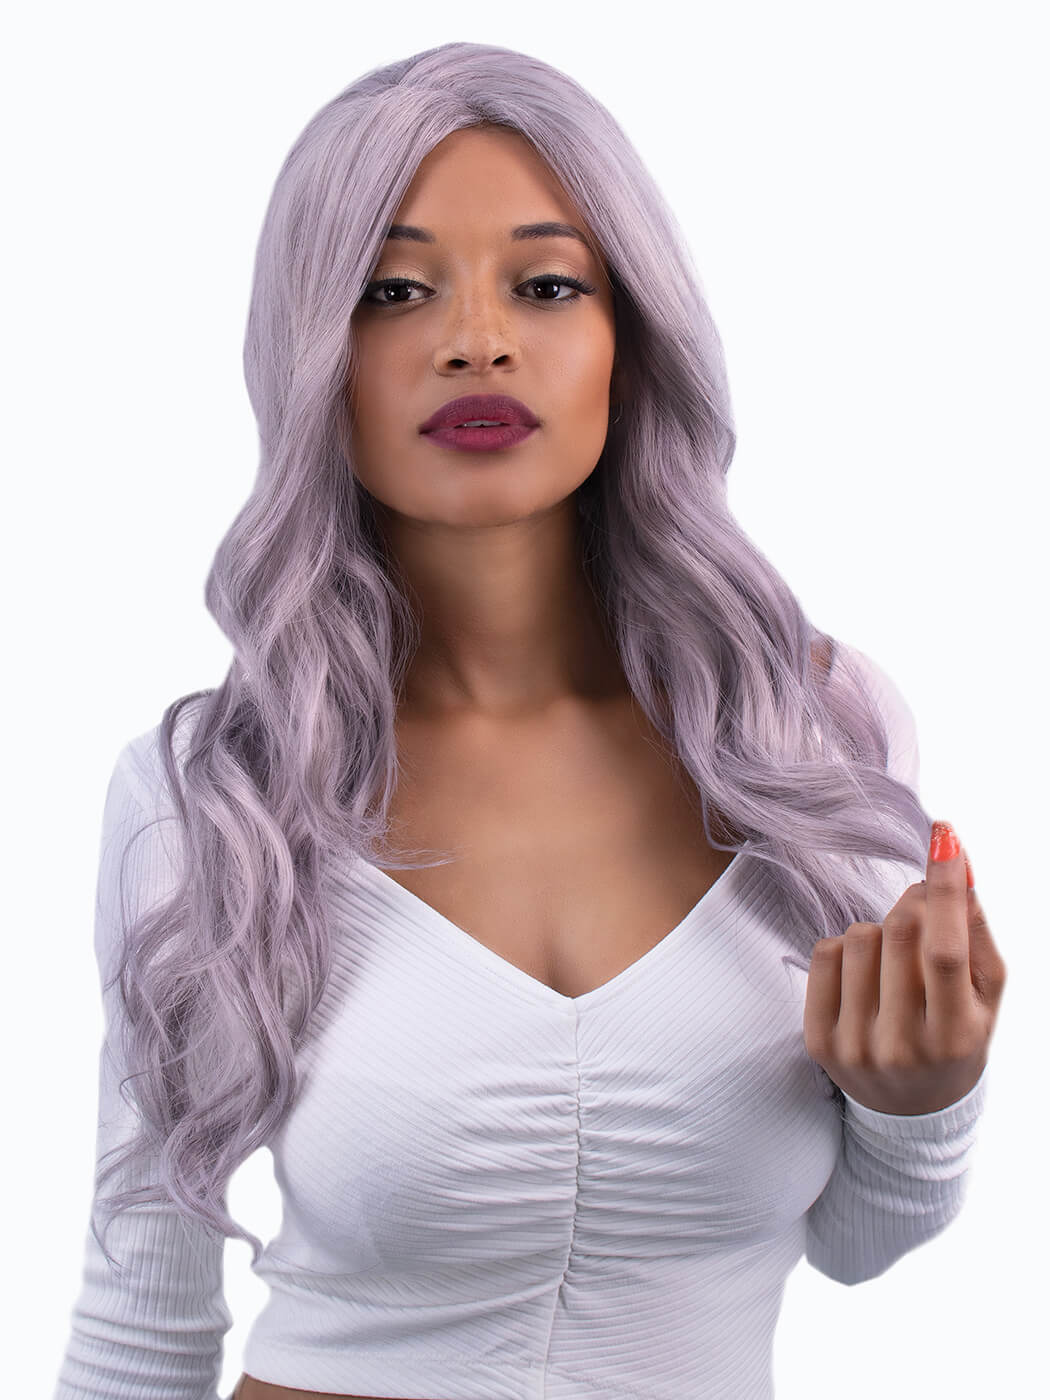 Iridescent - Tim Carli Long Light Purple Wig front view | Synthetic Wig | Cosplay Wig